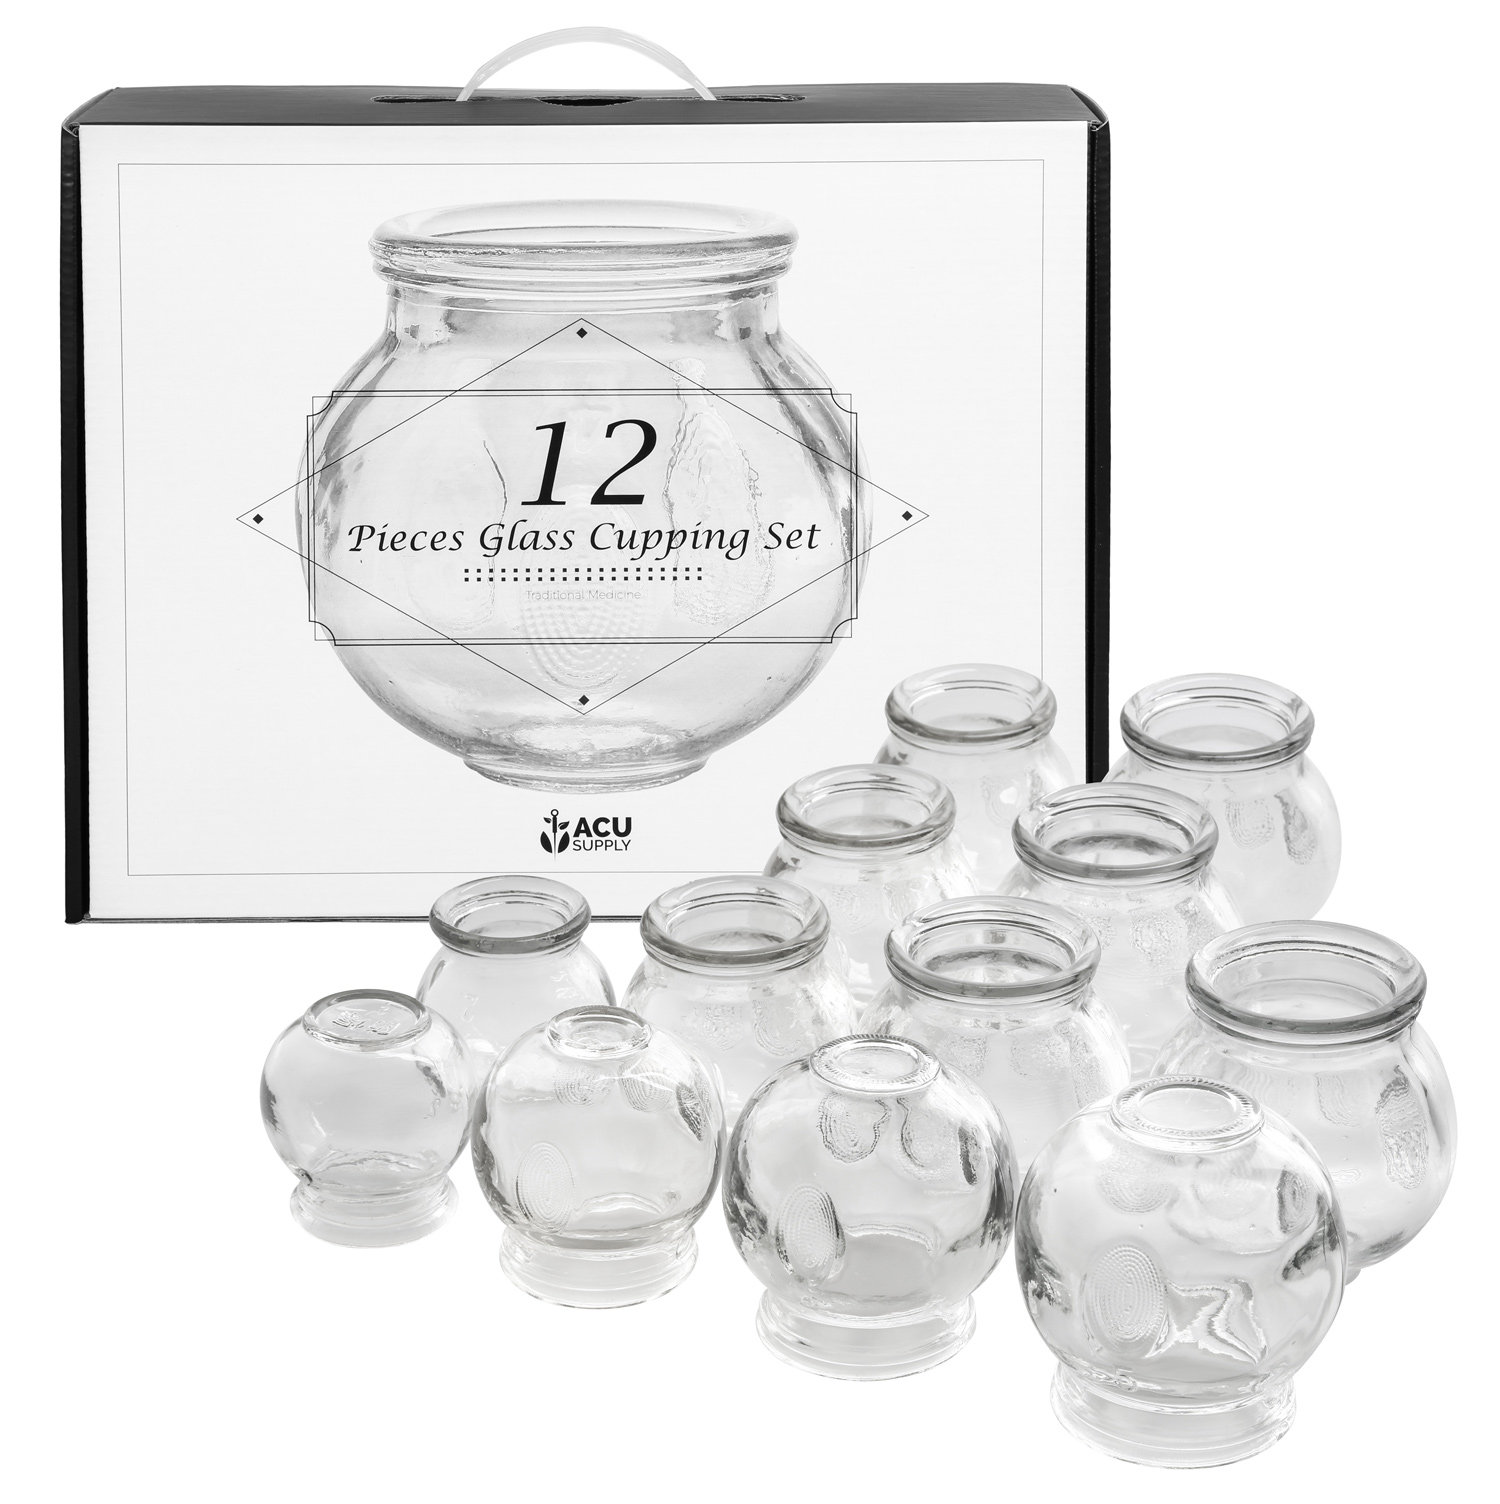 Cupping Treatment: Glass Cupping Therapy Set With Guidance On Application And